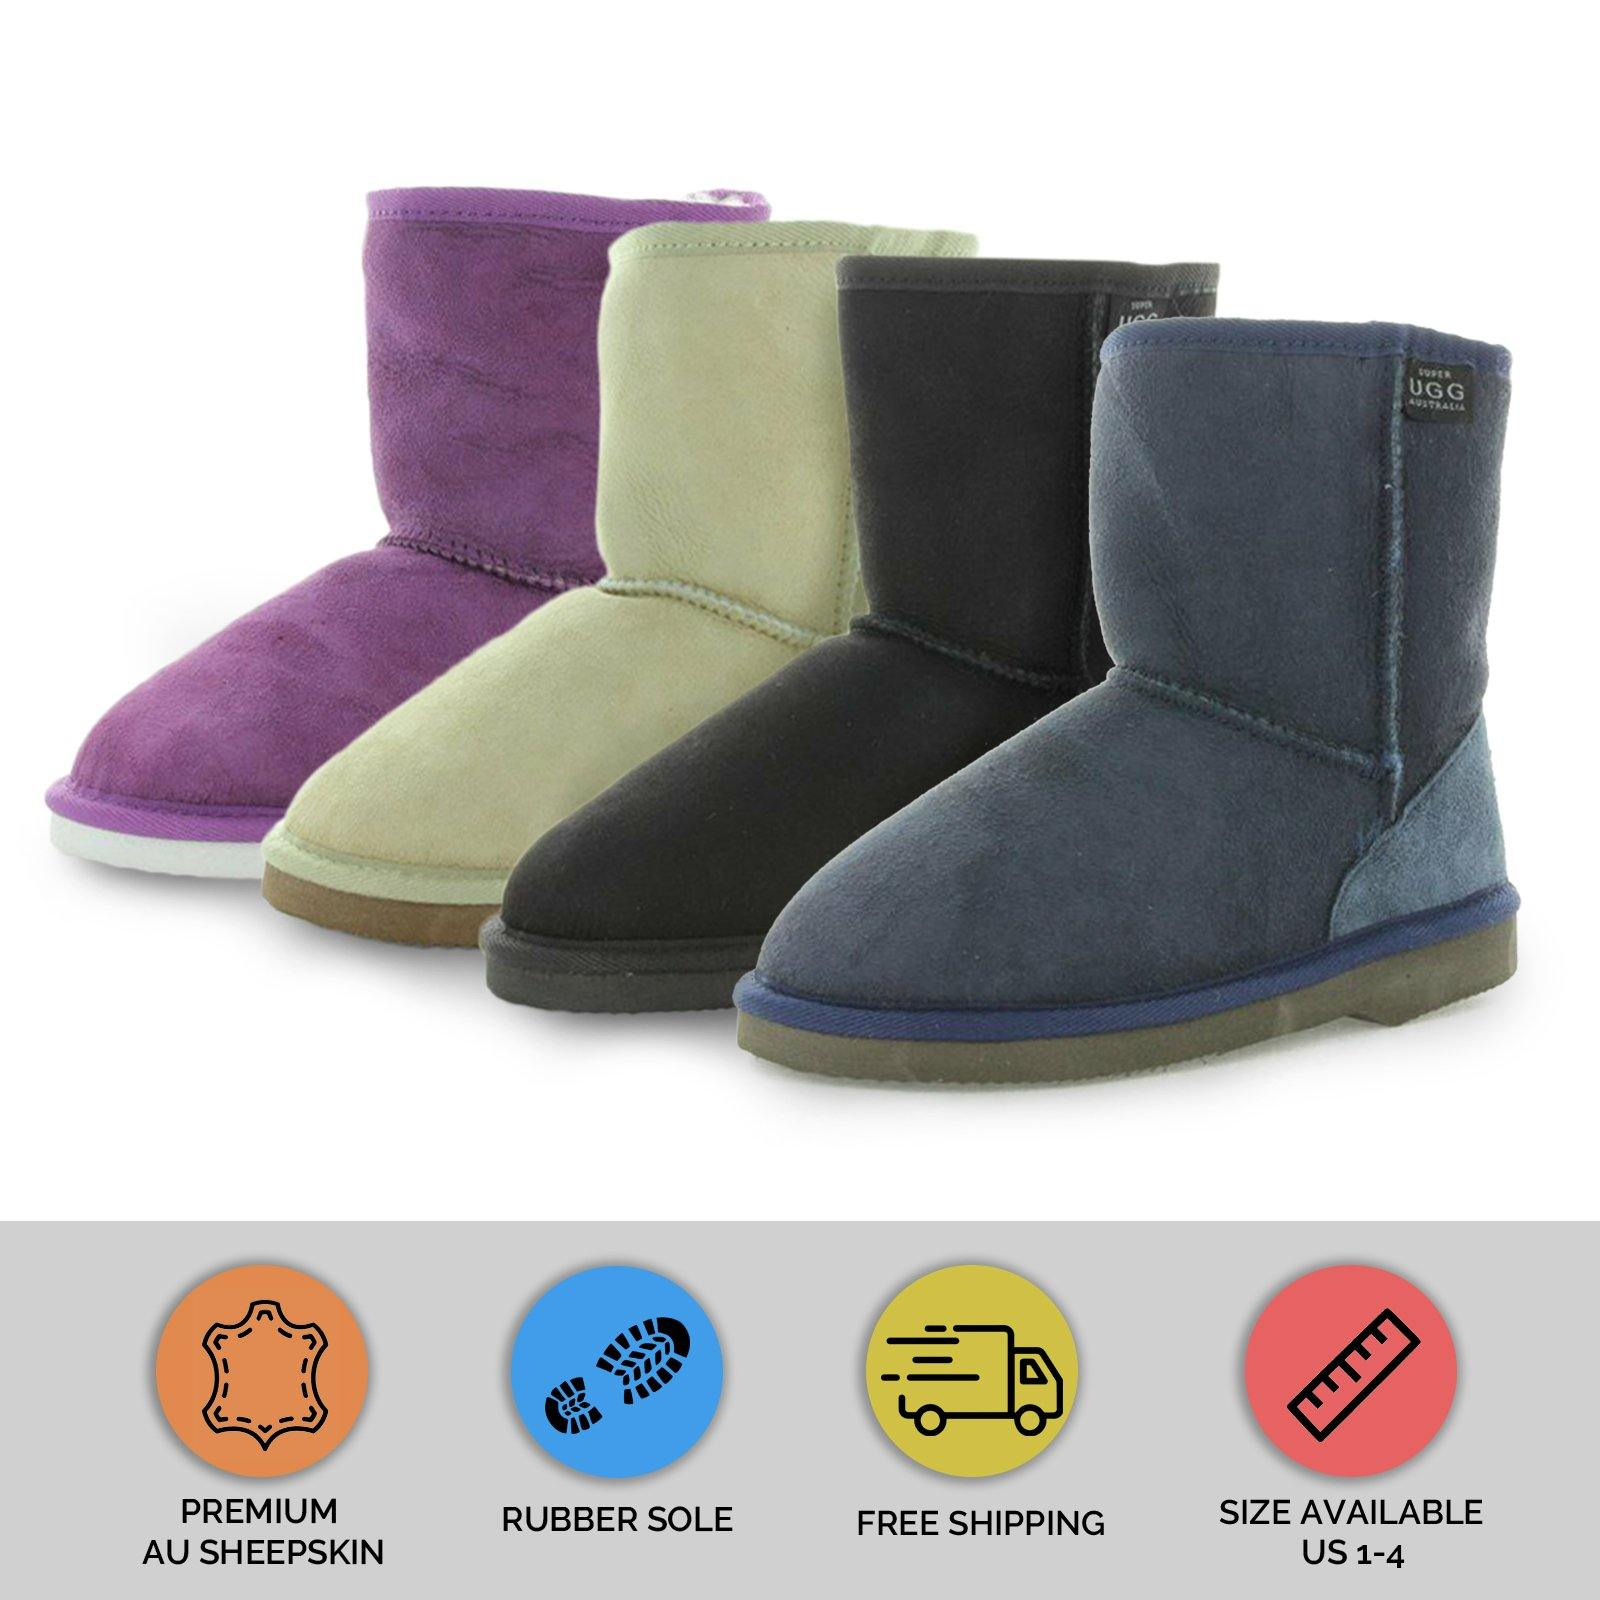 MANDURAH KIDS by YELLOW EARTH - iShoes - Sale, Women's Shoes: Slippers - FOOTWEAR-FOOTWEAR